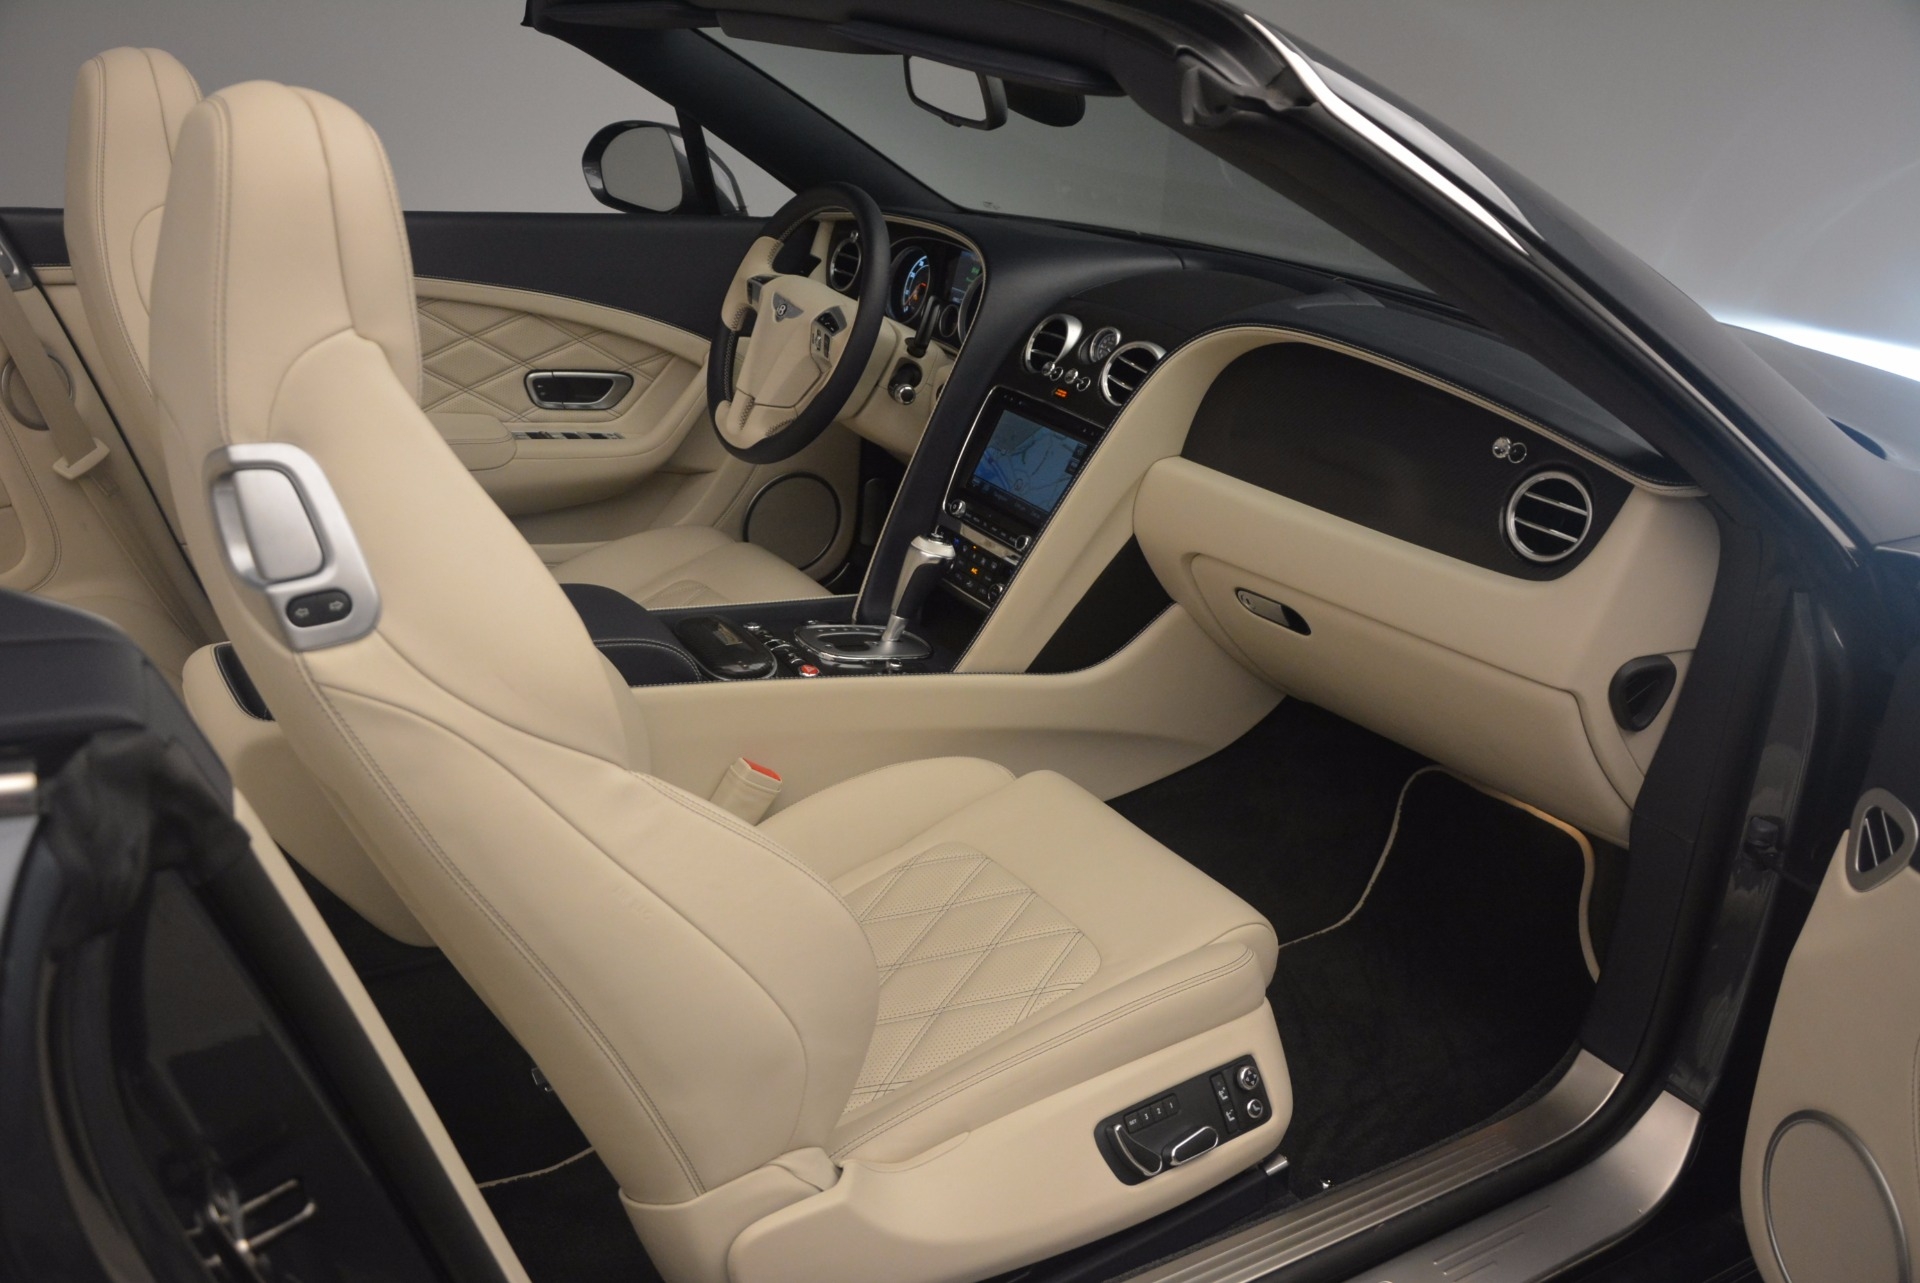 Used 2013 Bentley Continental GT V8 Le Mans Edition, 1 of 48 For Sale In Greenwich, CT 1288_p48